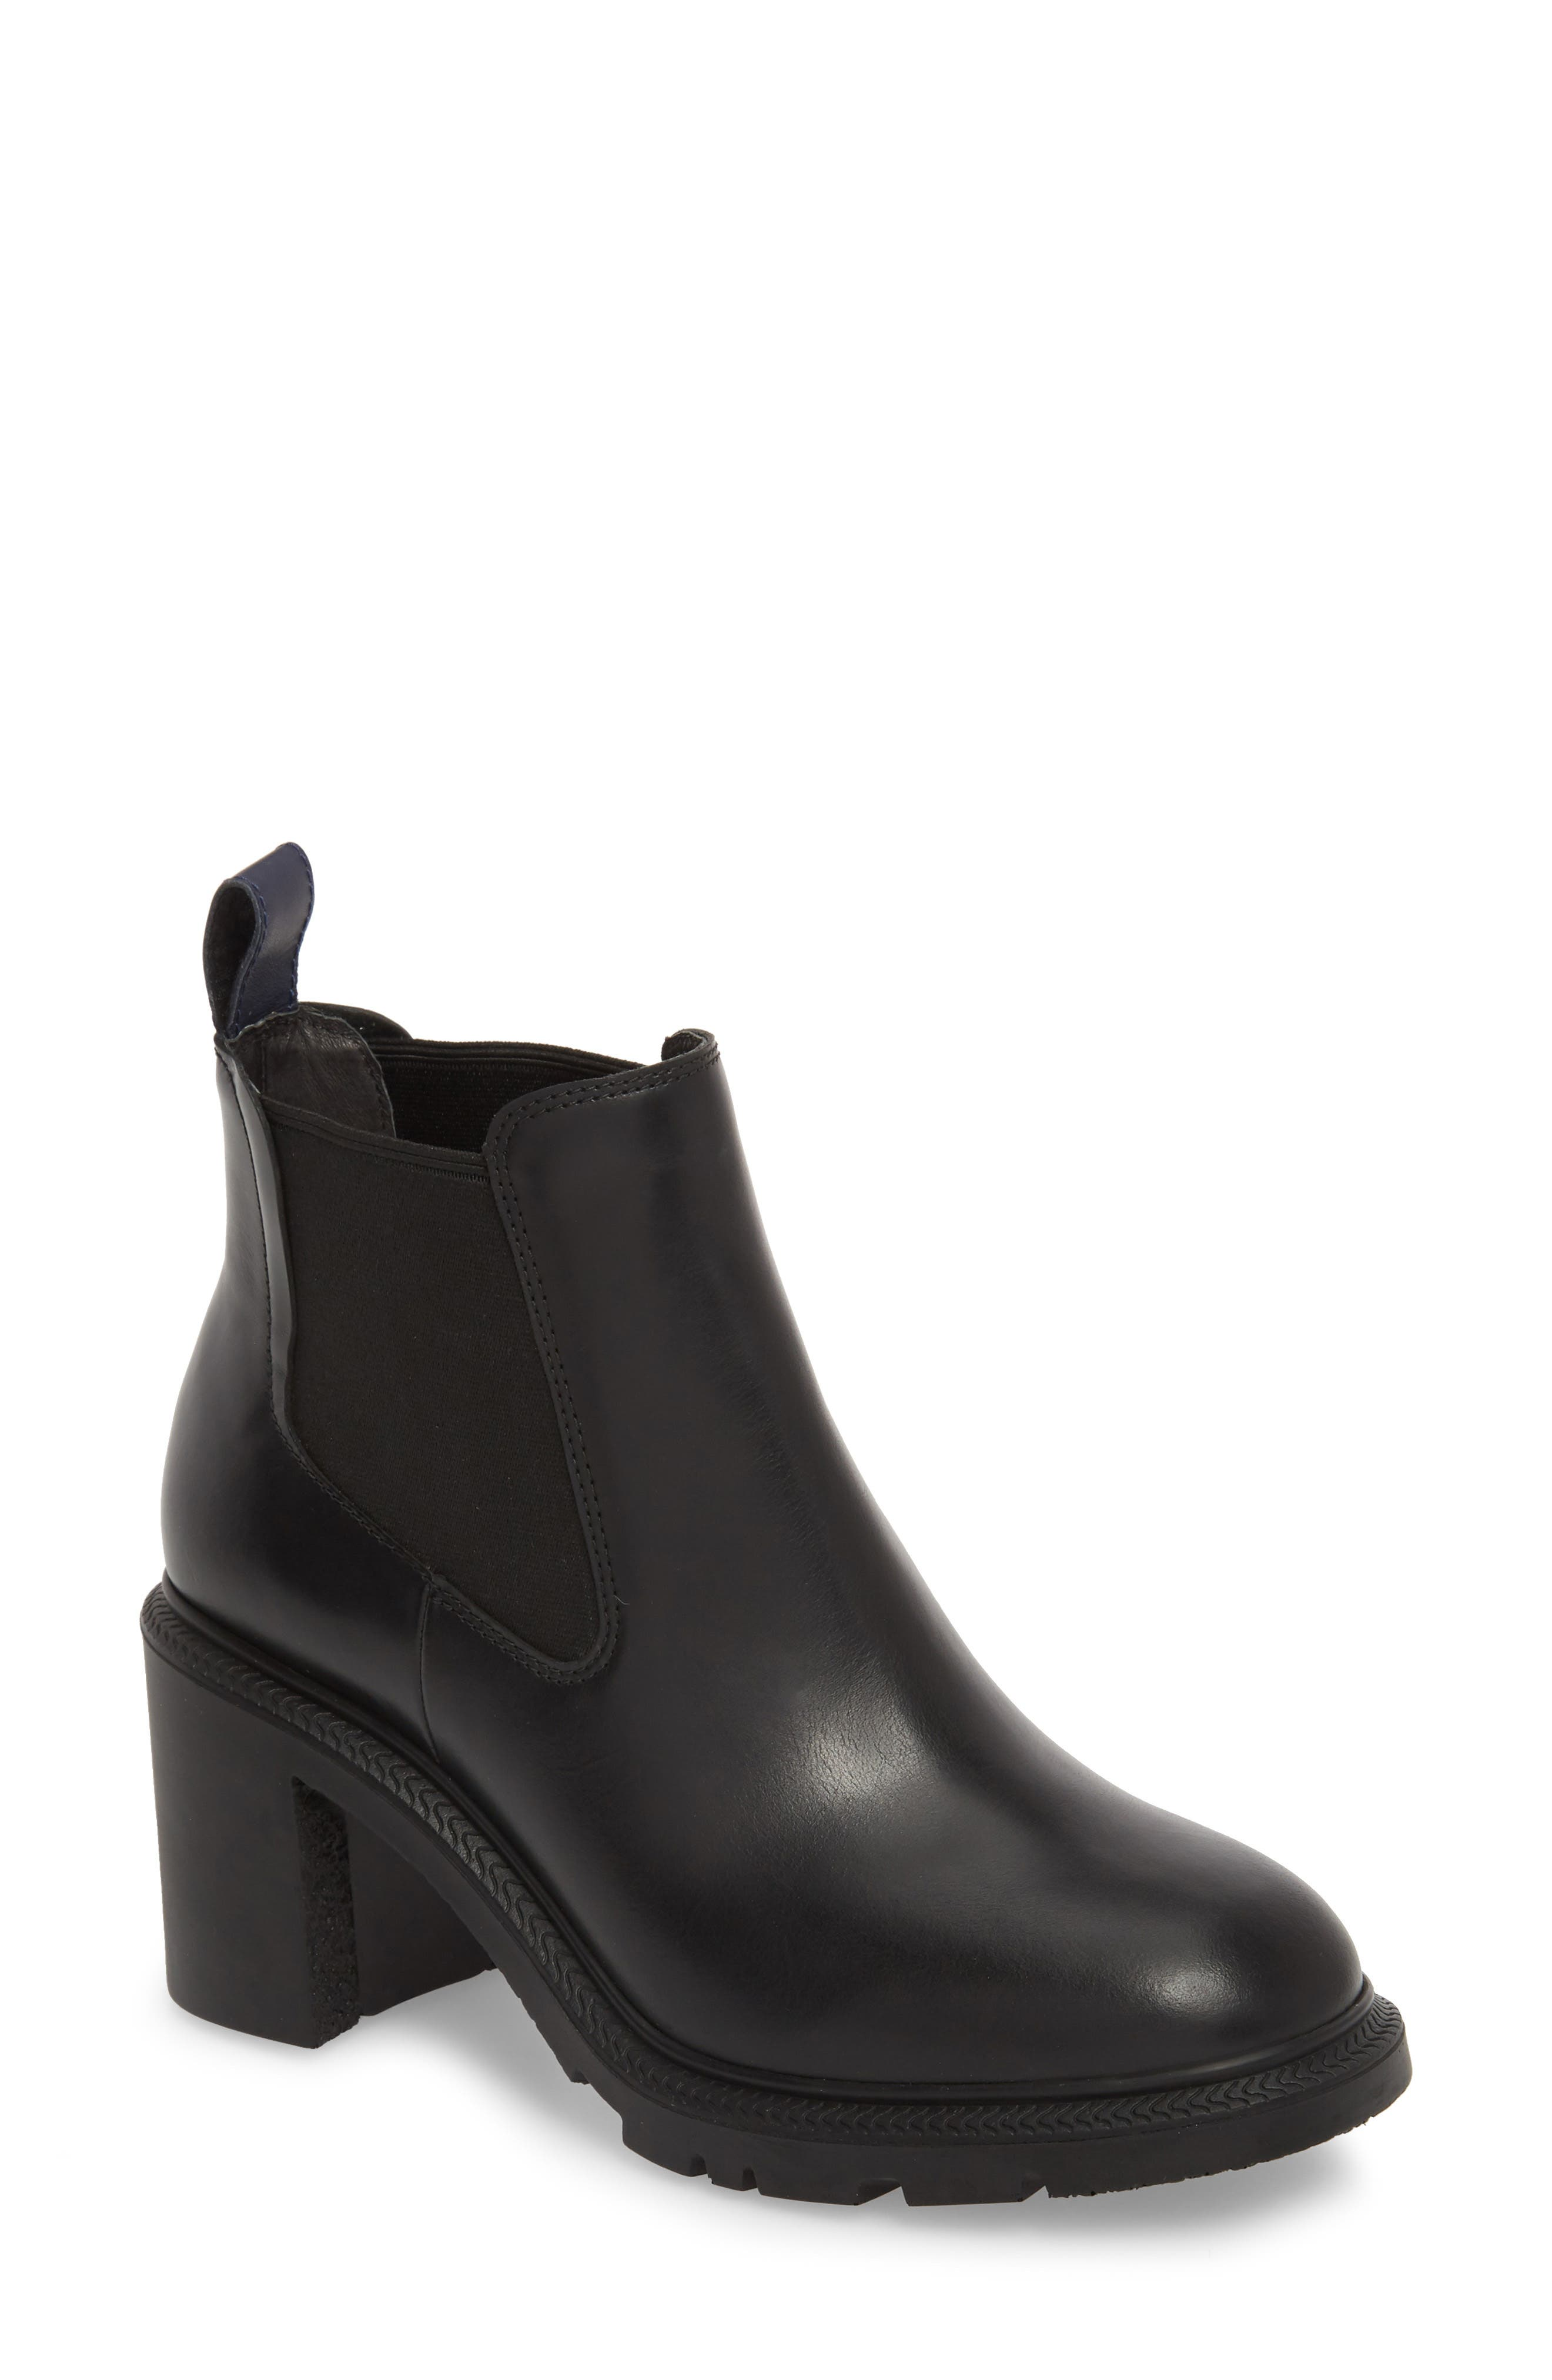 CAMPER Whitnee Bootie, Main, color, BLACK LEATHER/ BLACK